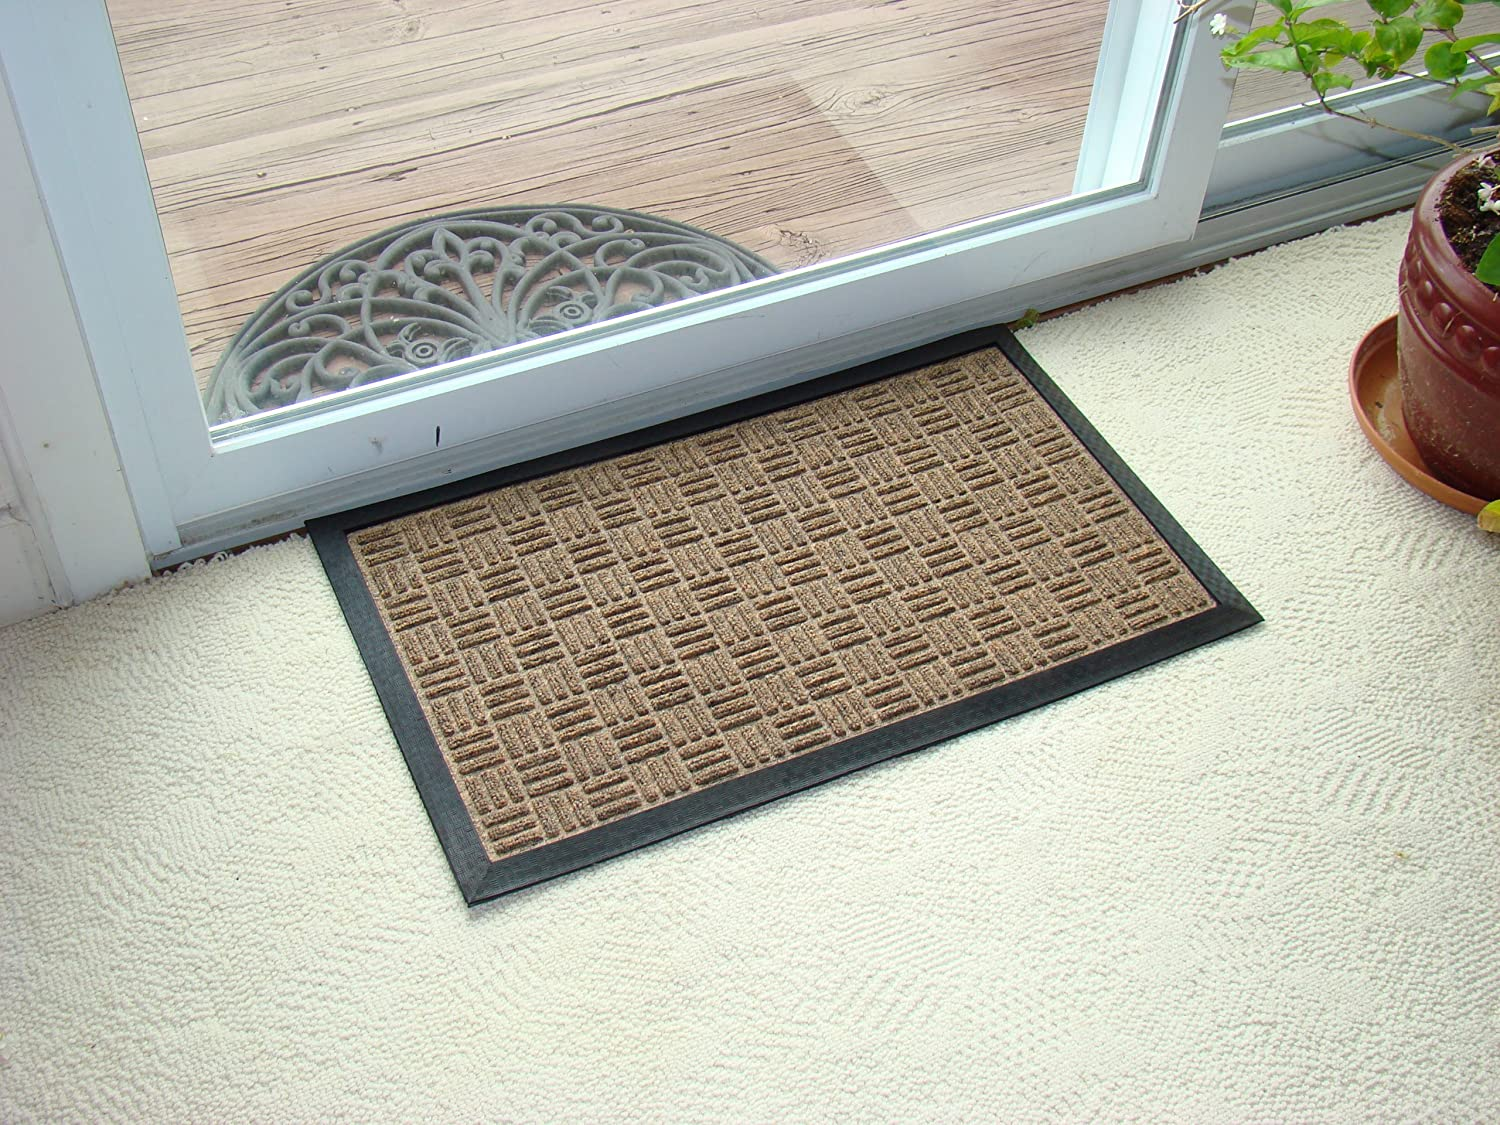 Kempf Water Retainer Mat, 18 by 30-Inch, Brown, Durable Rubber Door Mat, Carpet-Like Polypropylene Fabric, Easy Clean, Low Profile for Entrances, Patio, High Traffic Areas, Dog/Cat mat